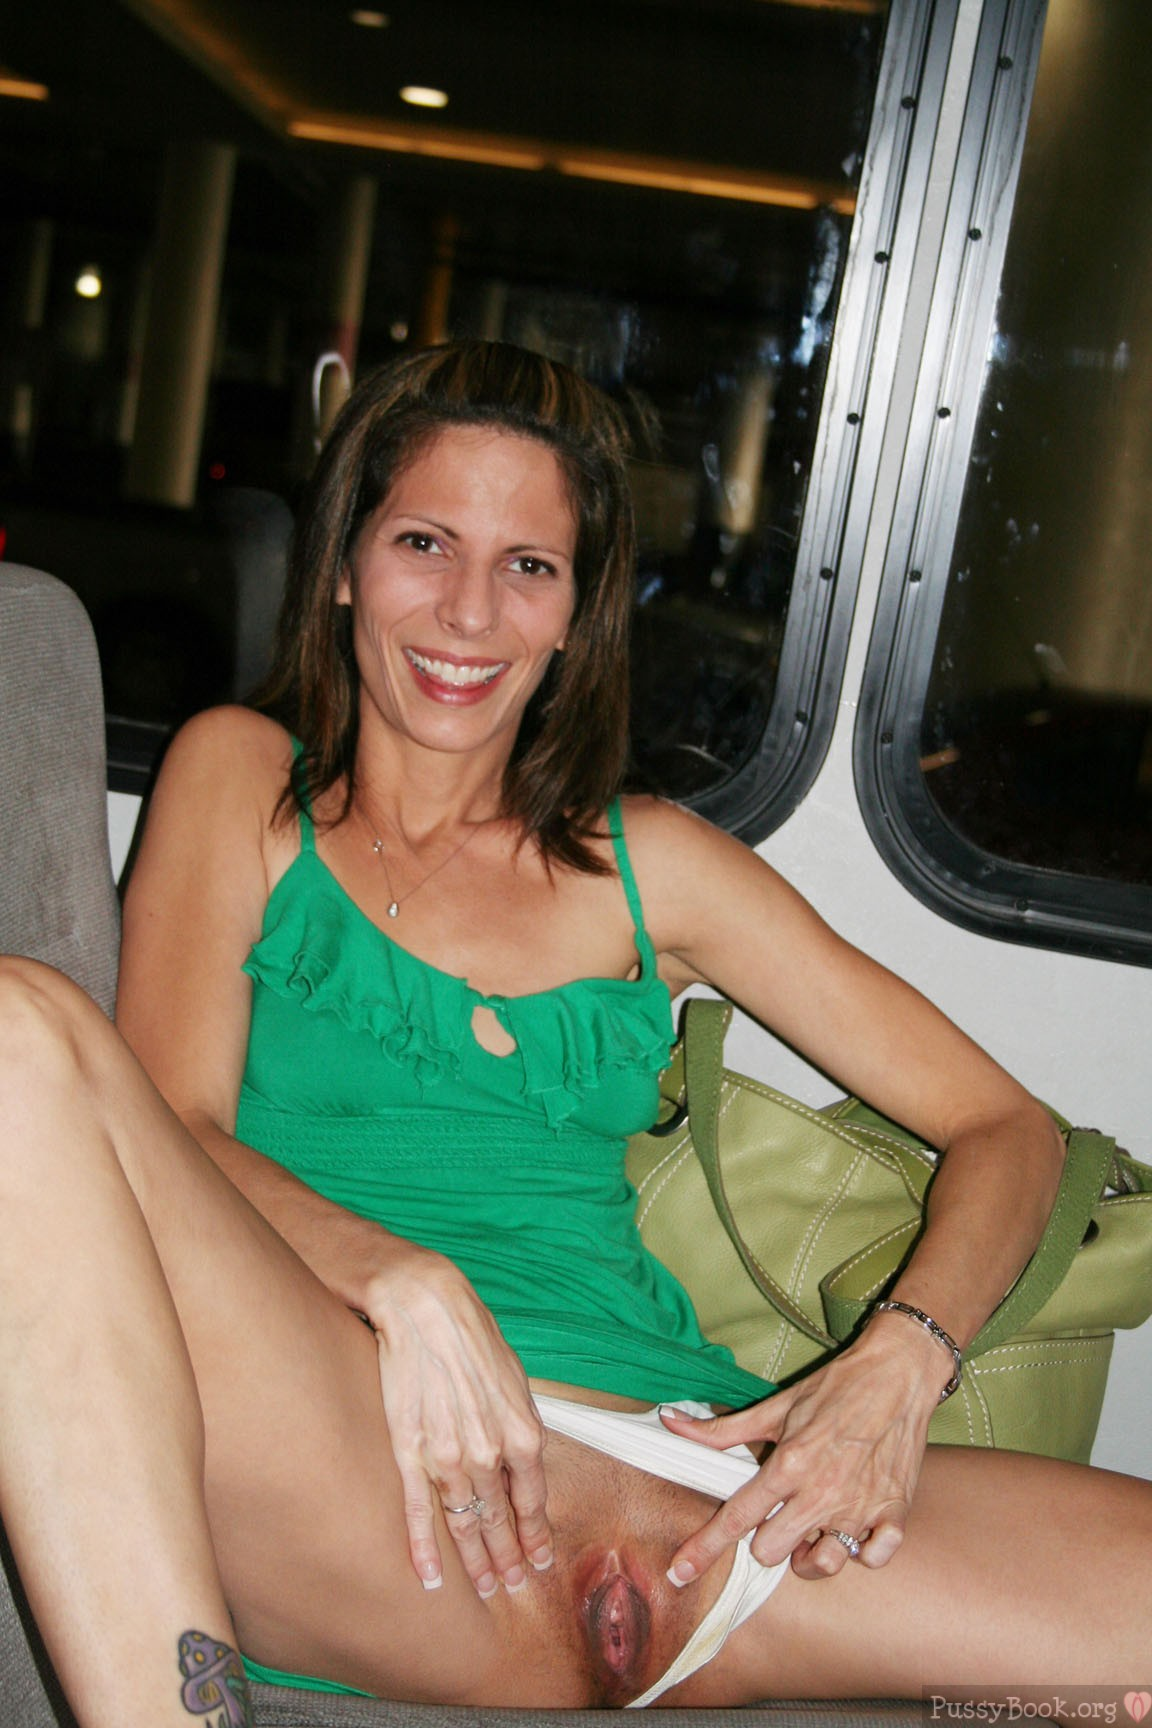 Nasty Slut Flashing Open Vagina In Public Transportation -7277